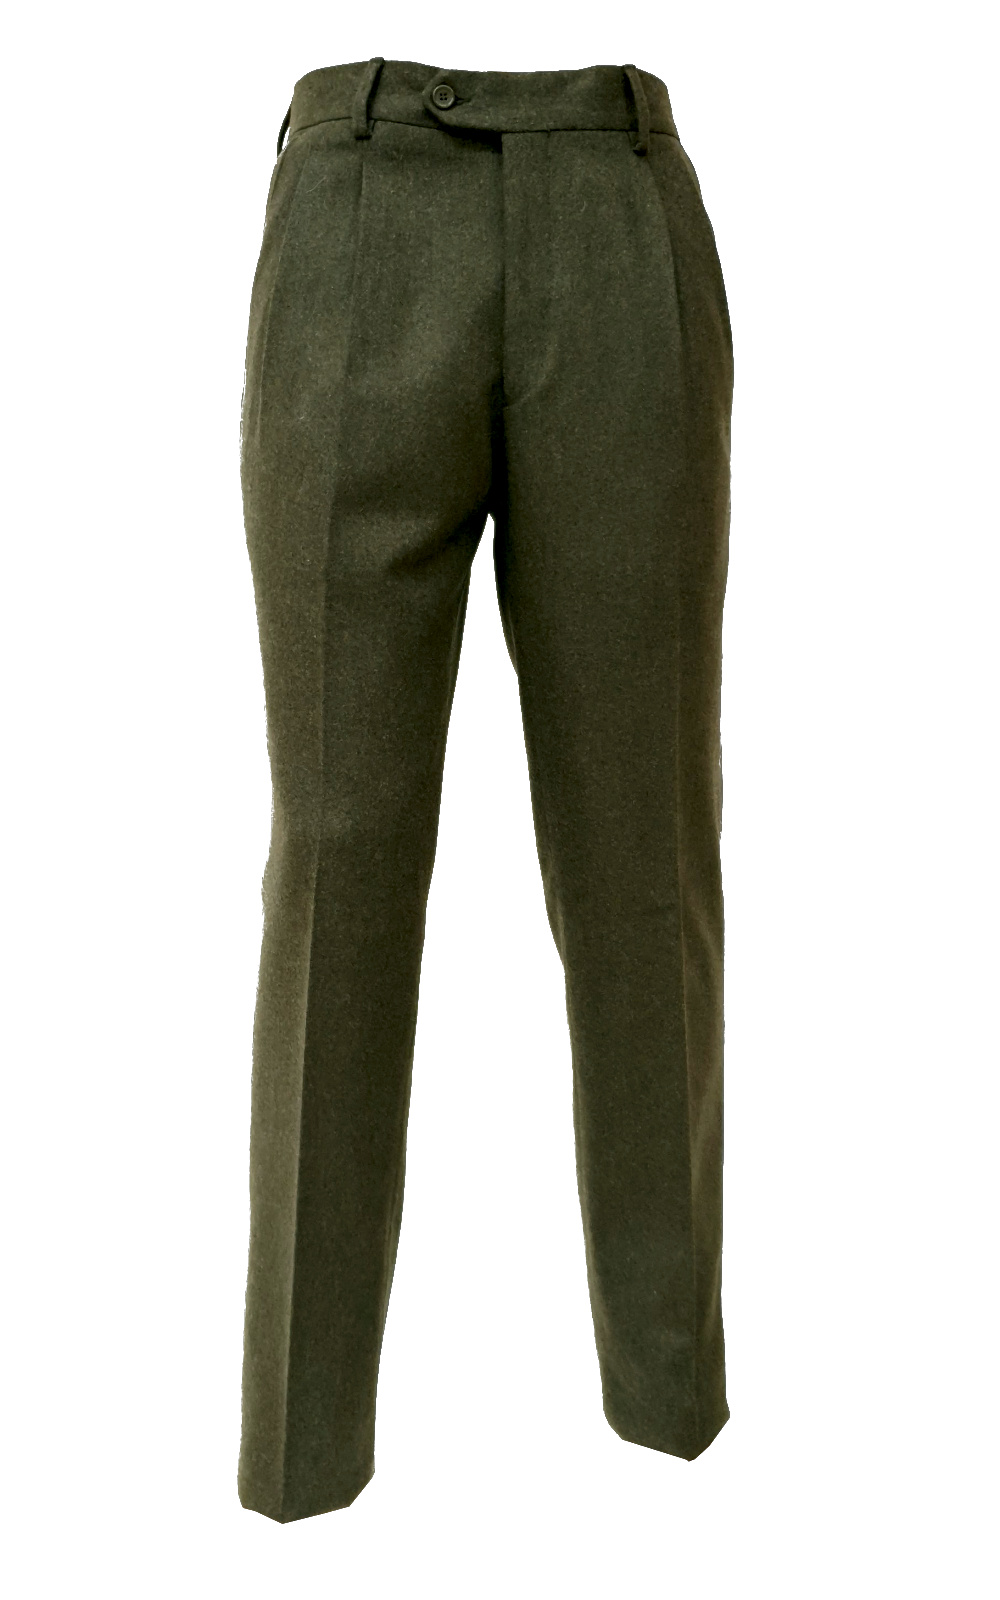 Pantalone Classico Lana Due pinces Flanella Made In Italy Tasca America M2204